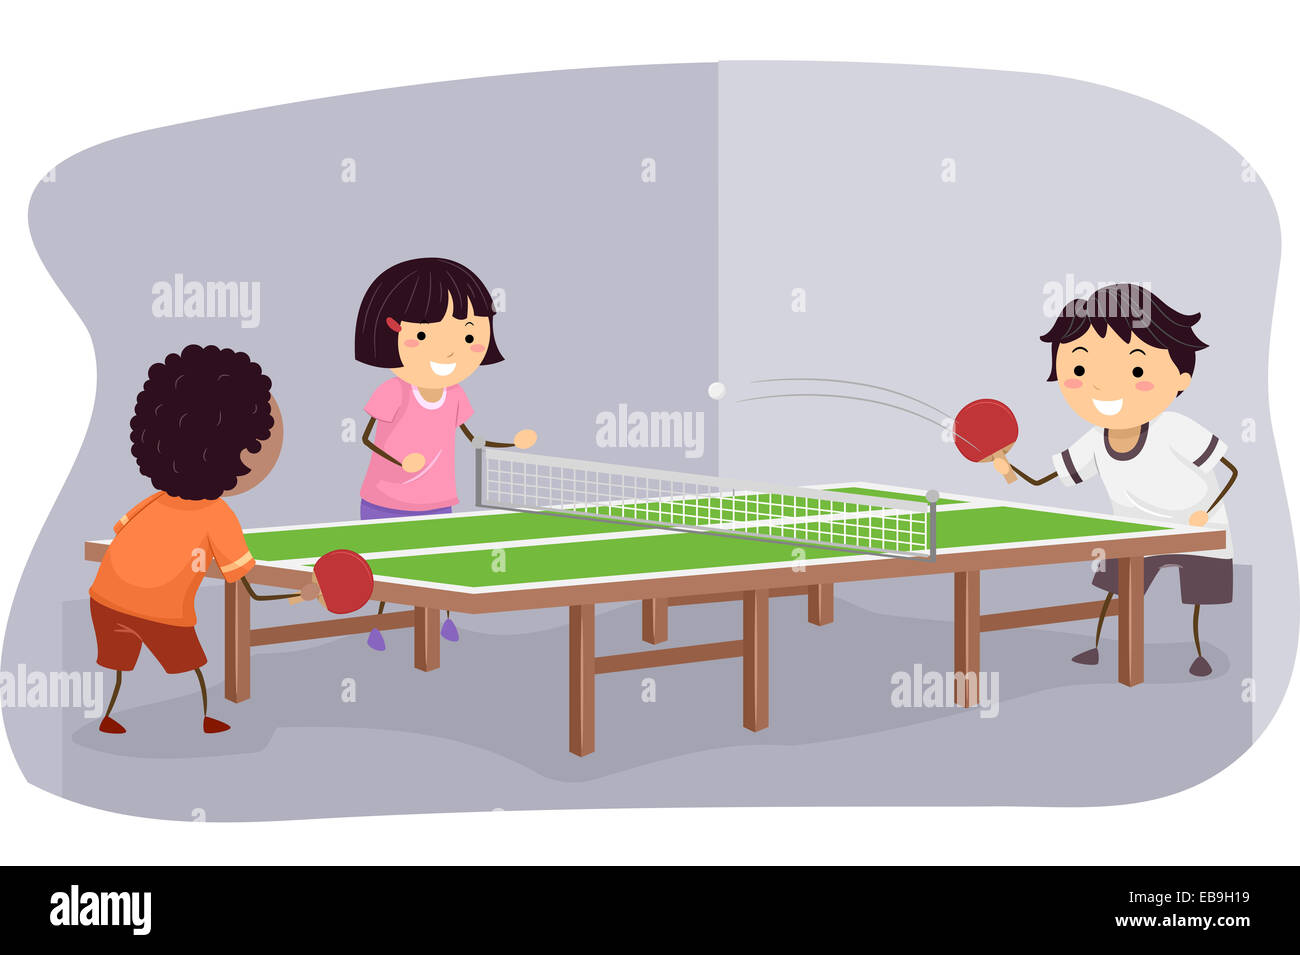 Illustration Featuring Kids Playing Table Tennis - Stock Image